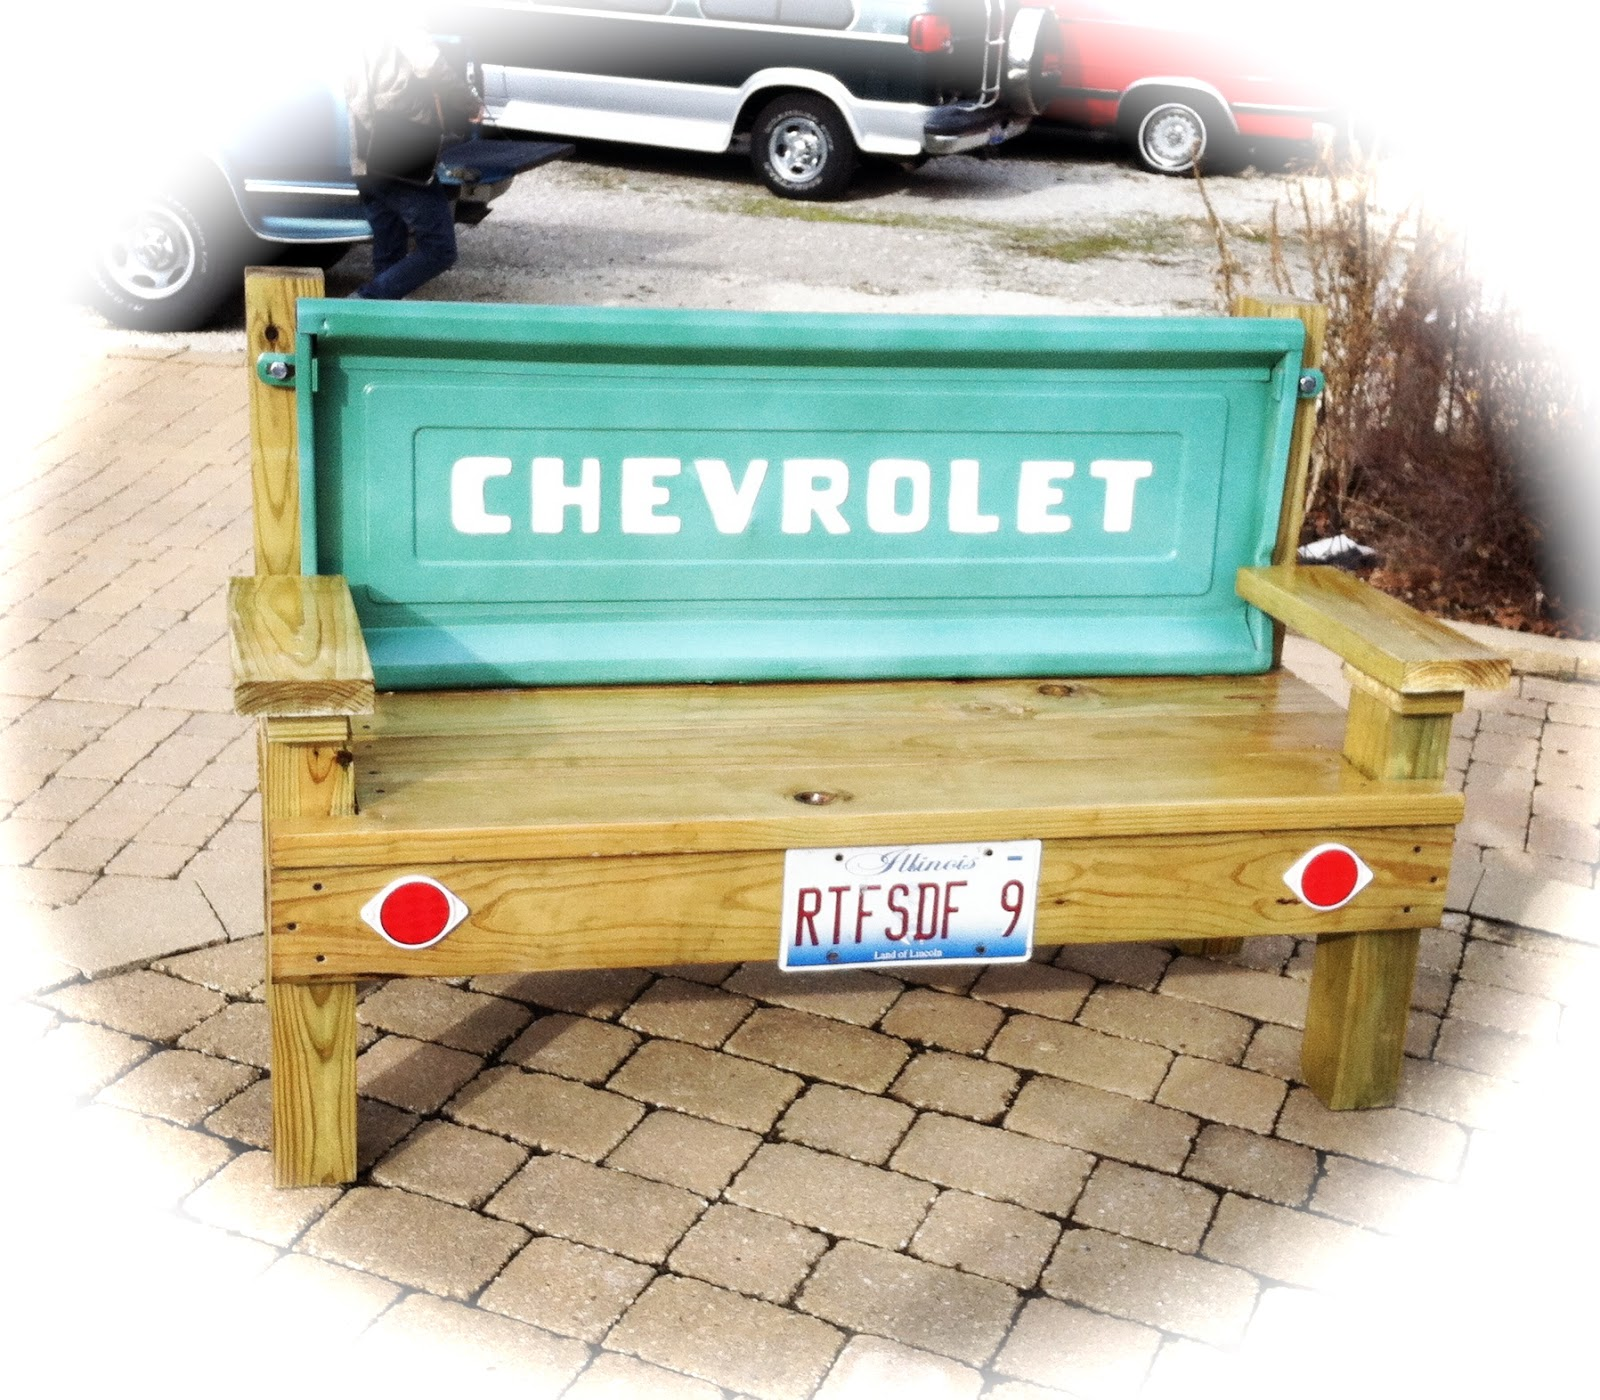 Tell a Diy tailgate bench plans : IMG5377 from manglids.blogspot.com size 1600 x 1400 jpeg 455kB